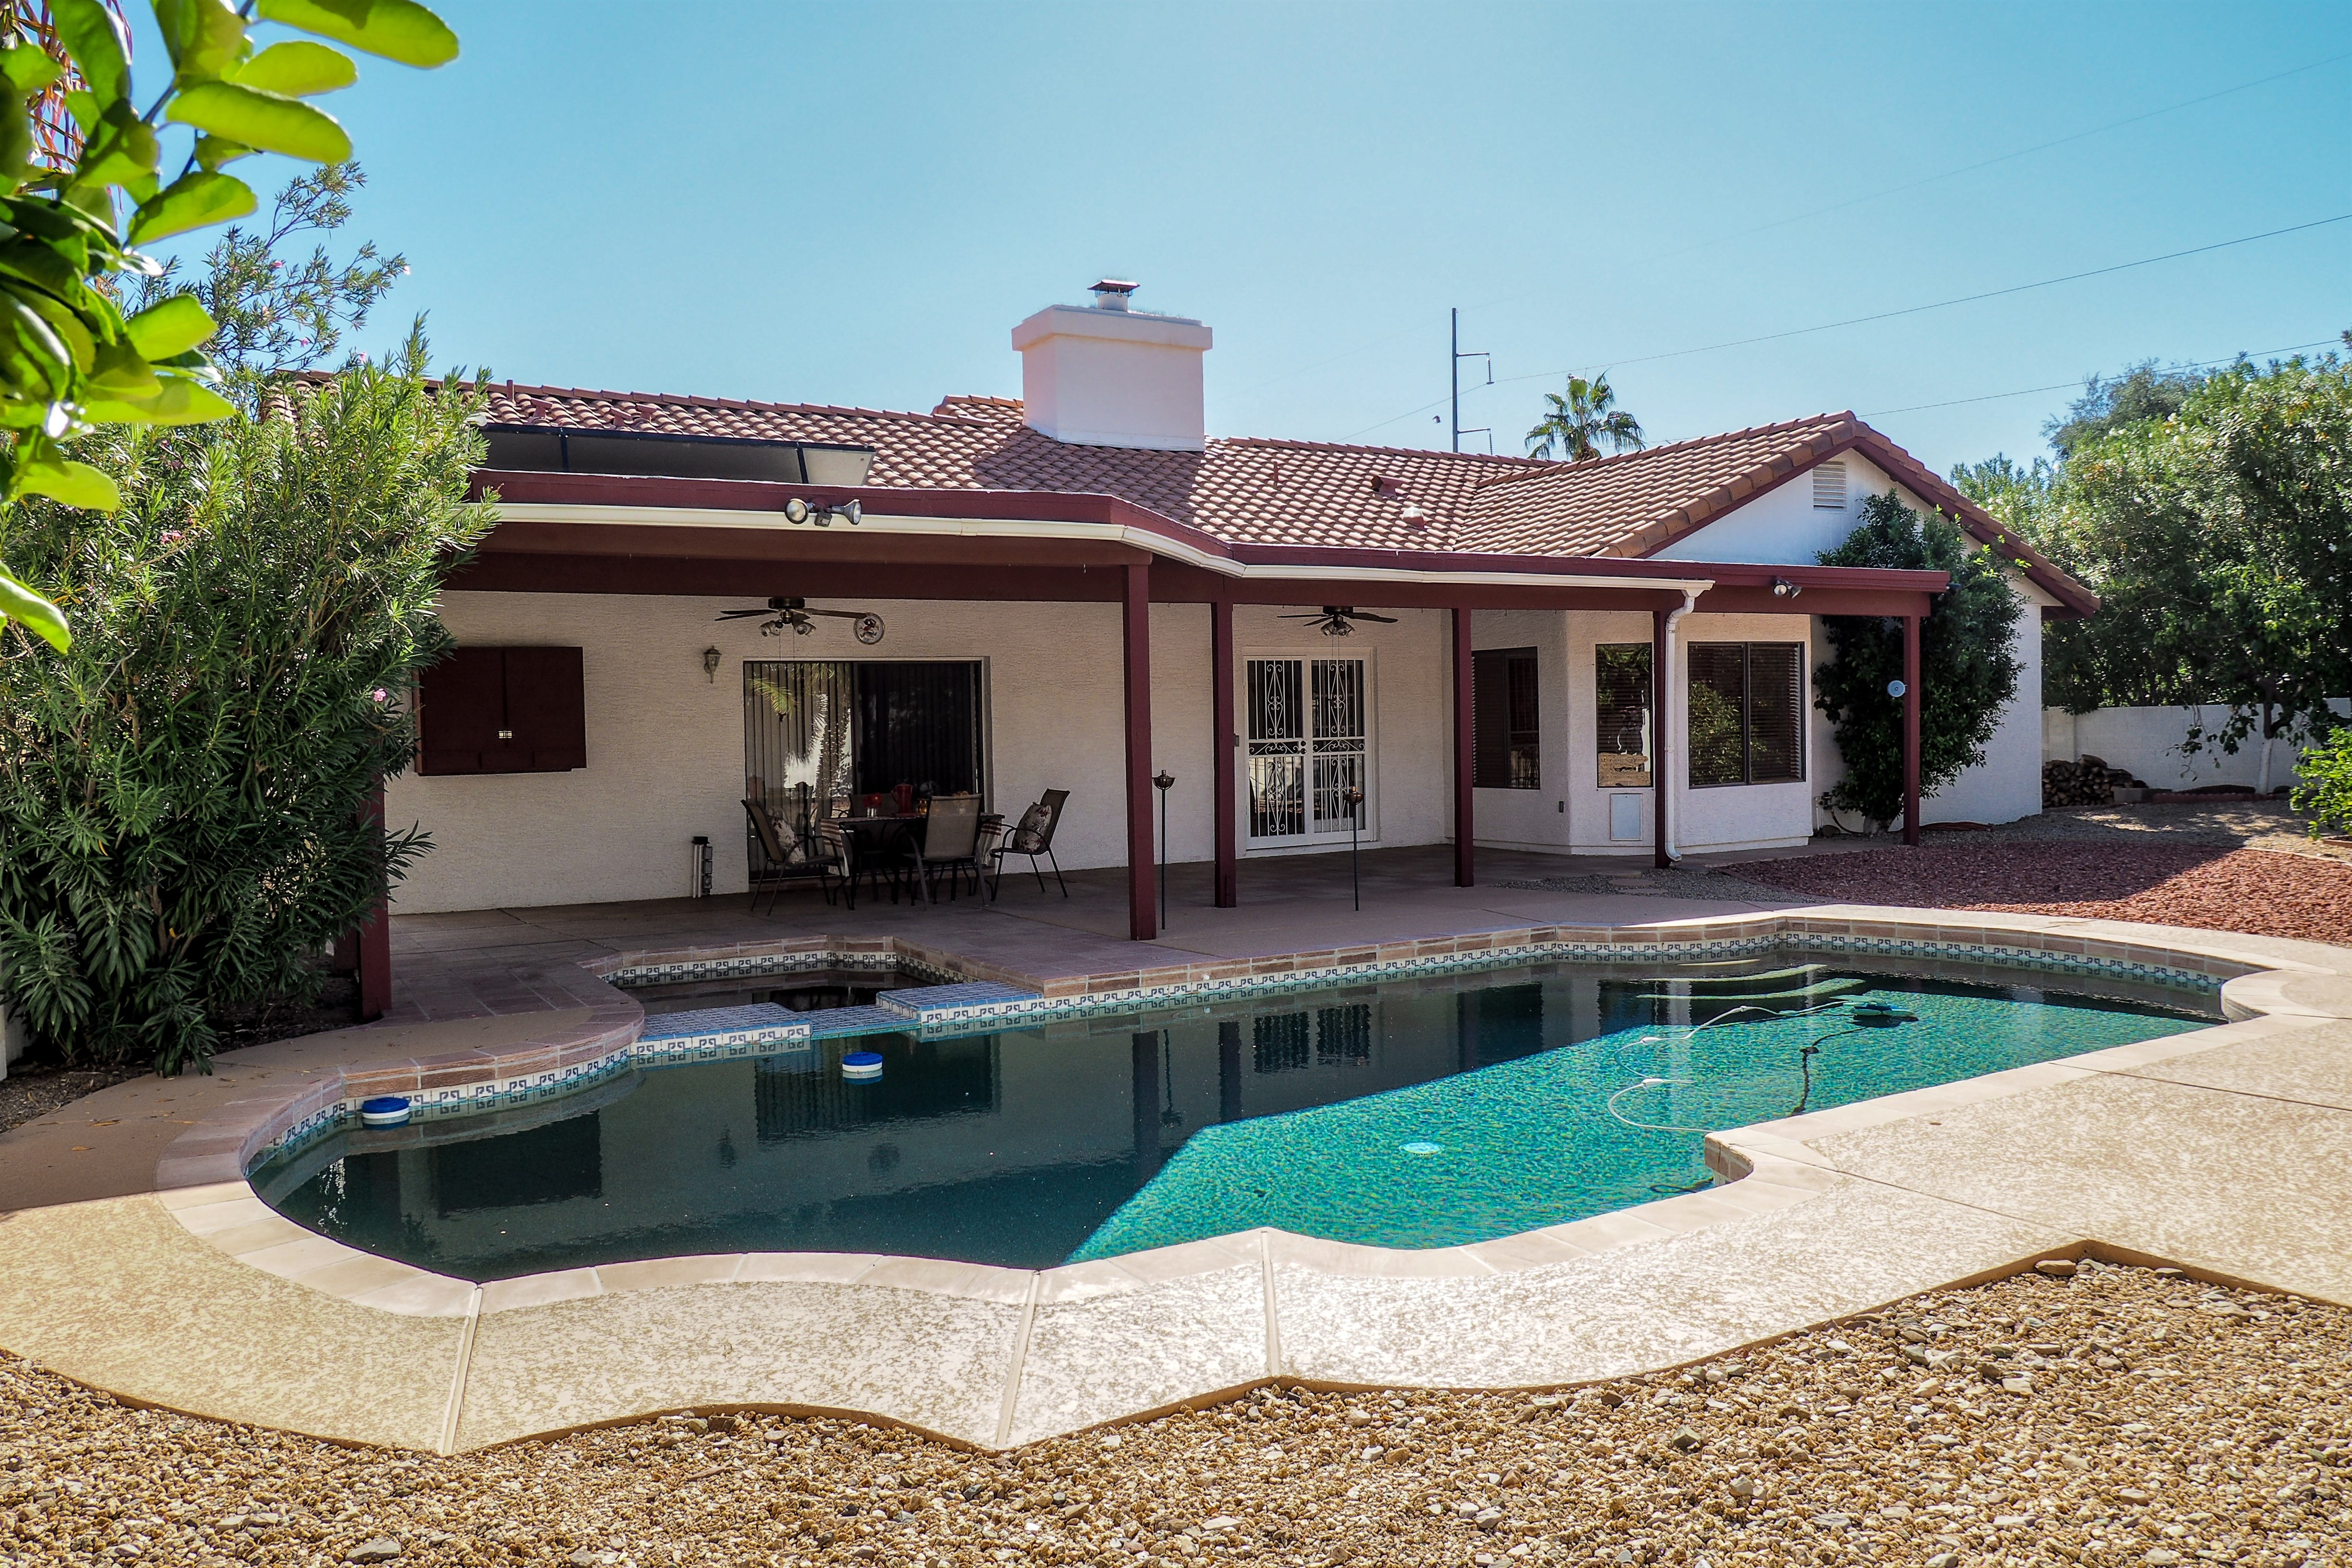 4 bedroom moon valley home for sale pool 3 car garage u for Moon valley motor care